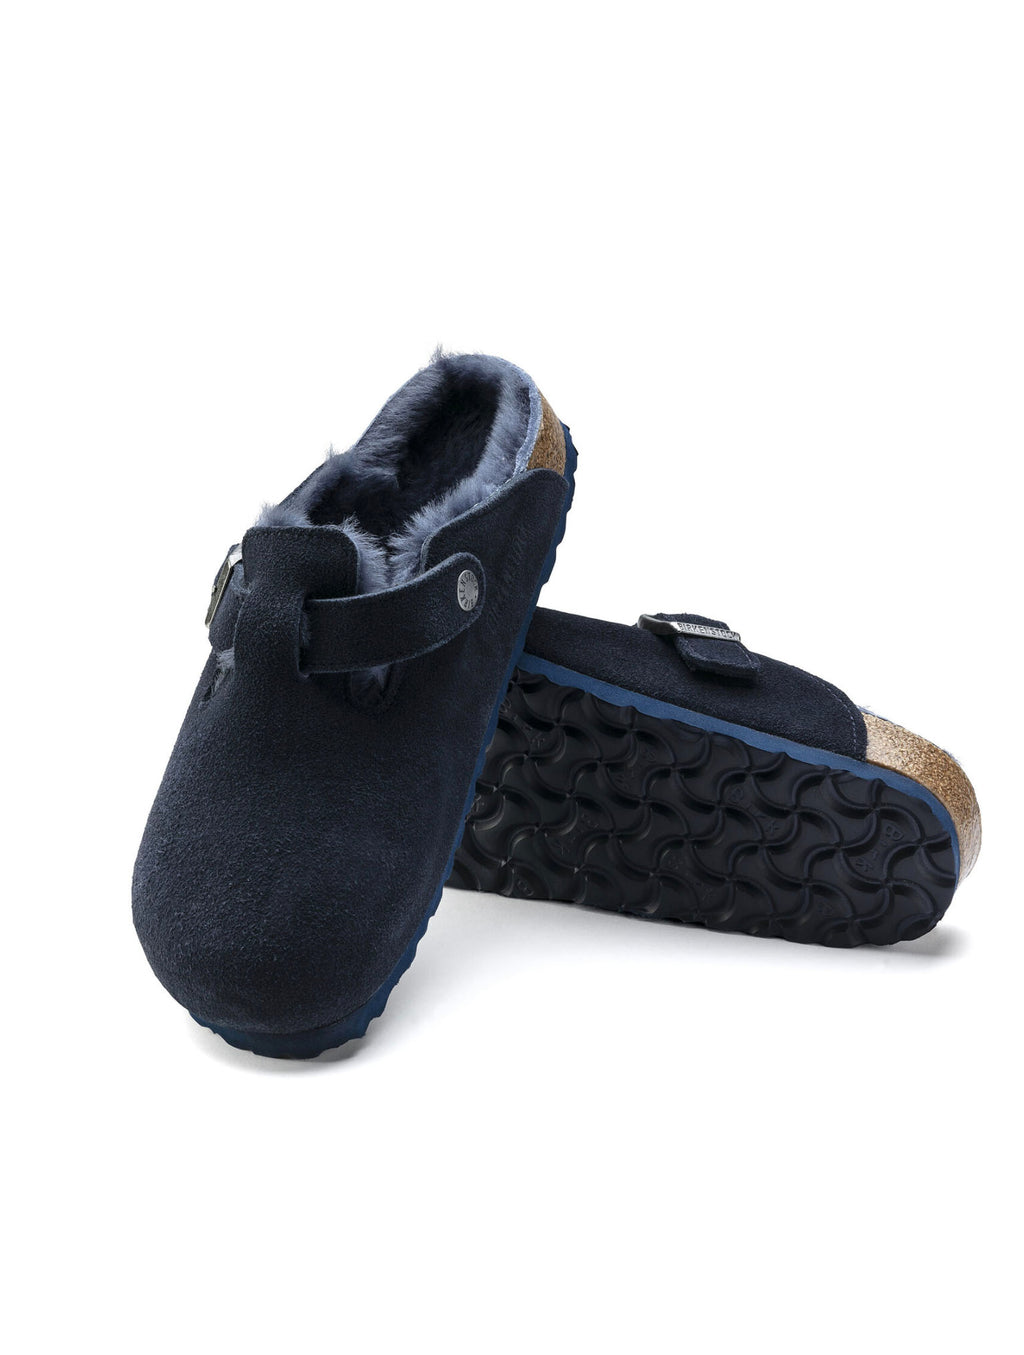 Birkenstock Boston Shearling in Night